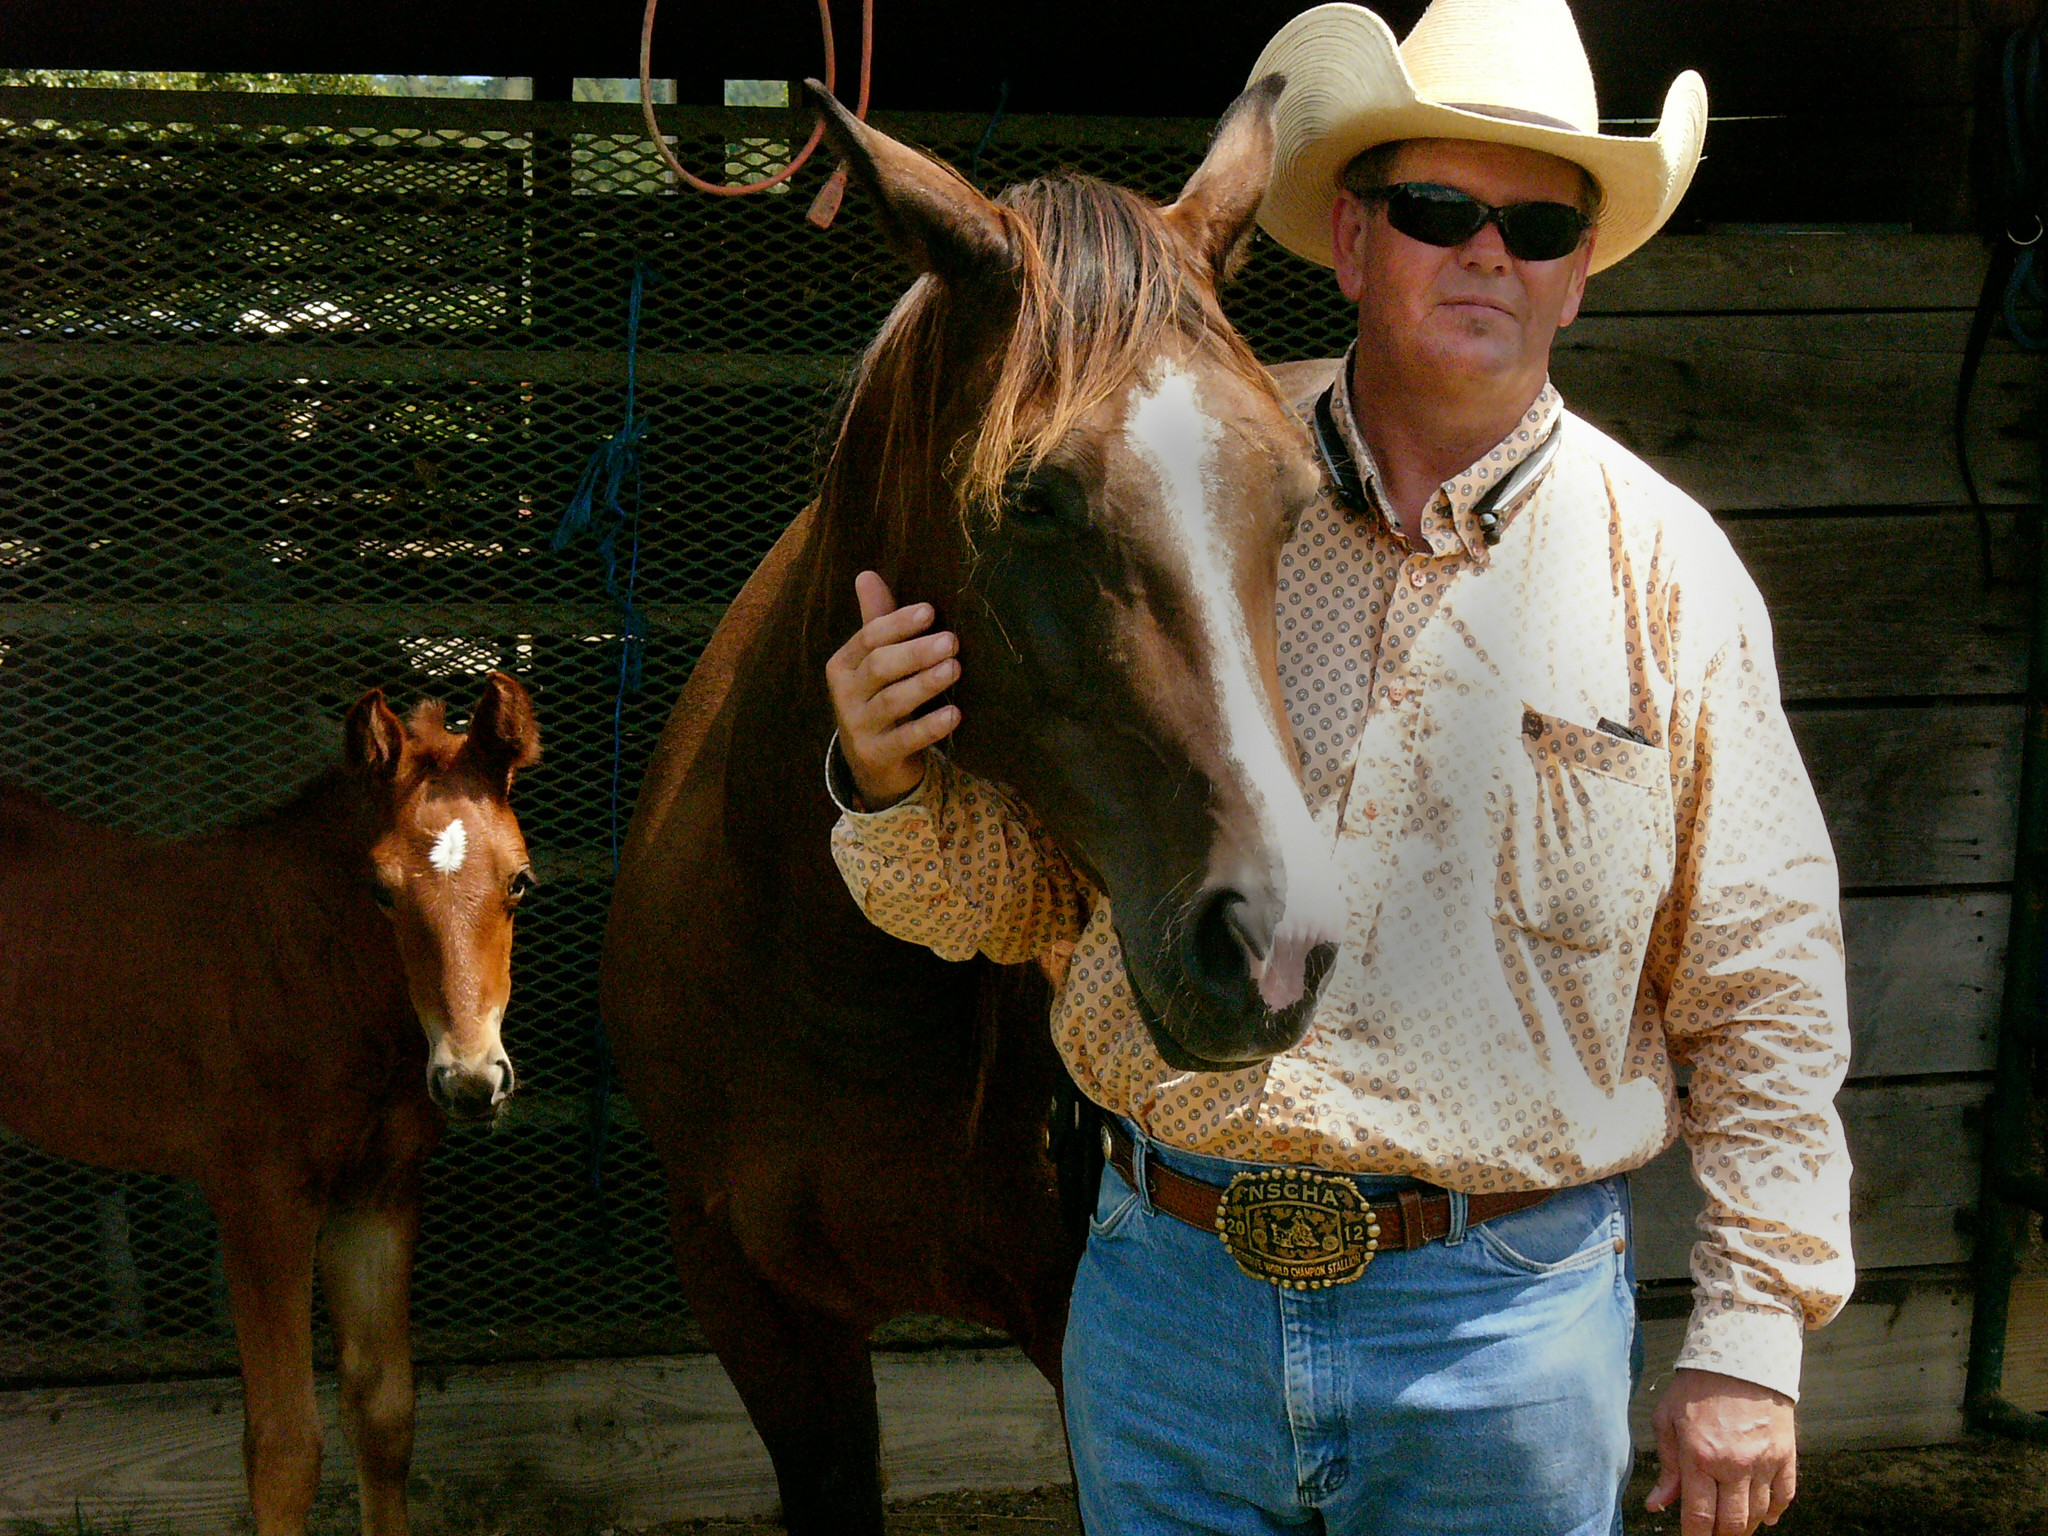 Mitchell Martin is a four-time World Champion Quarter Horse trainer.